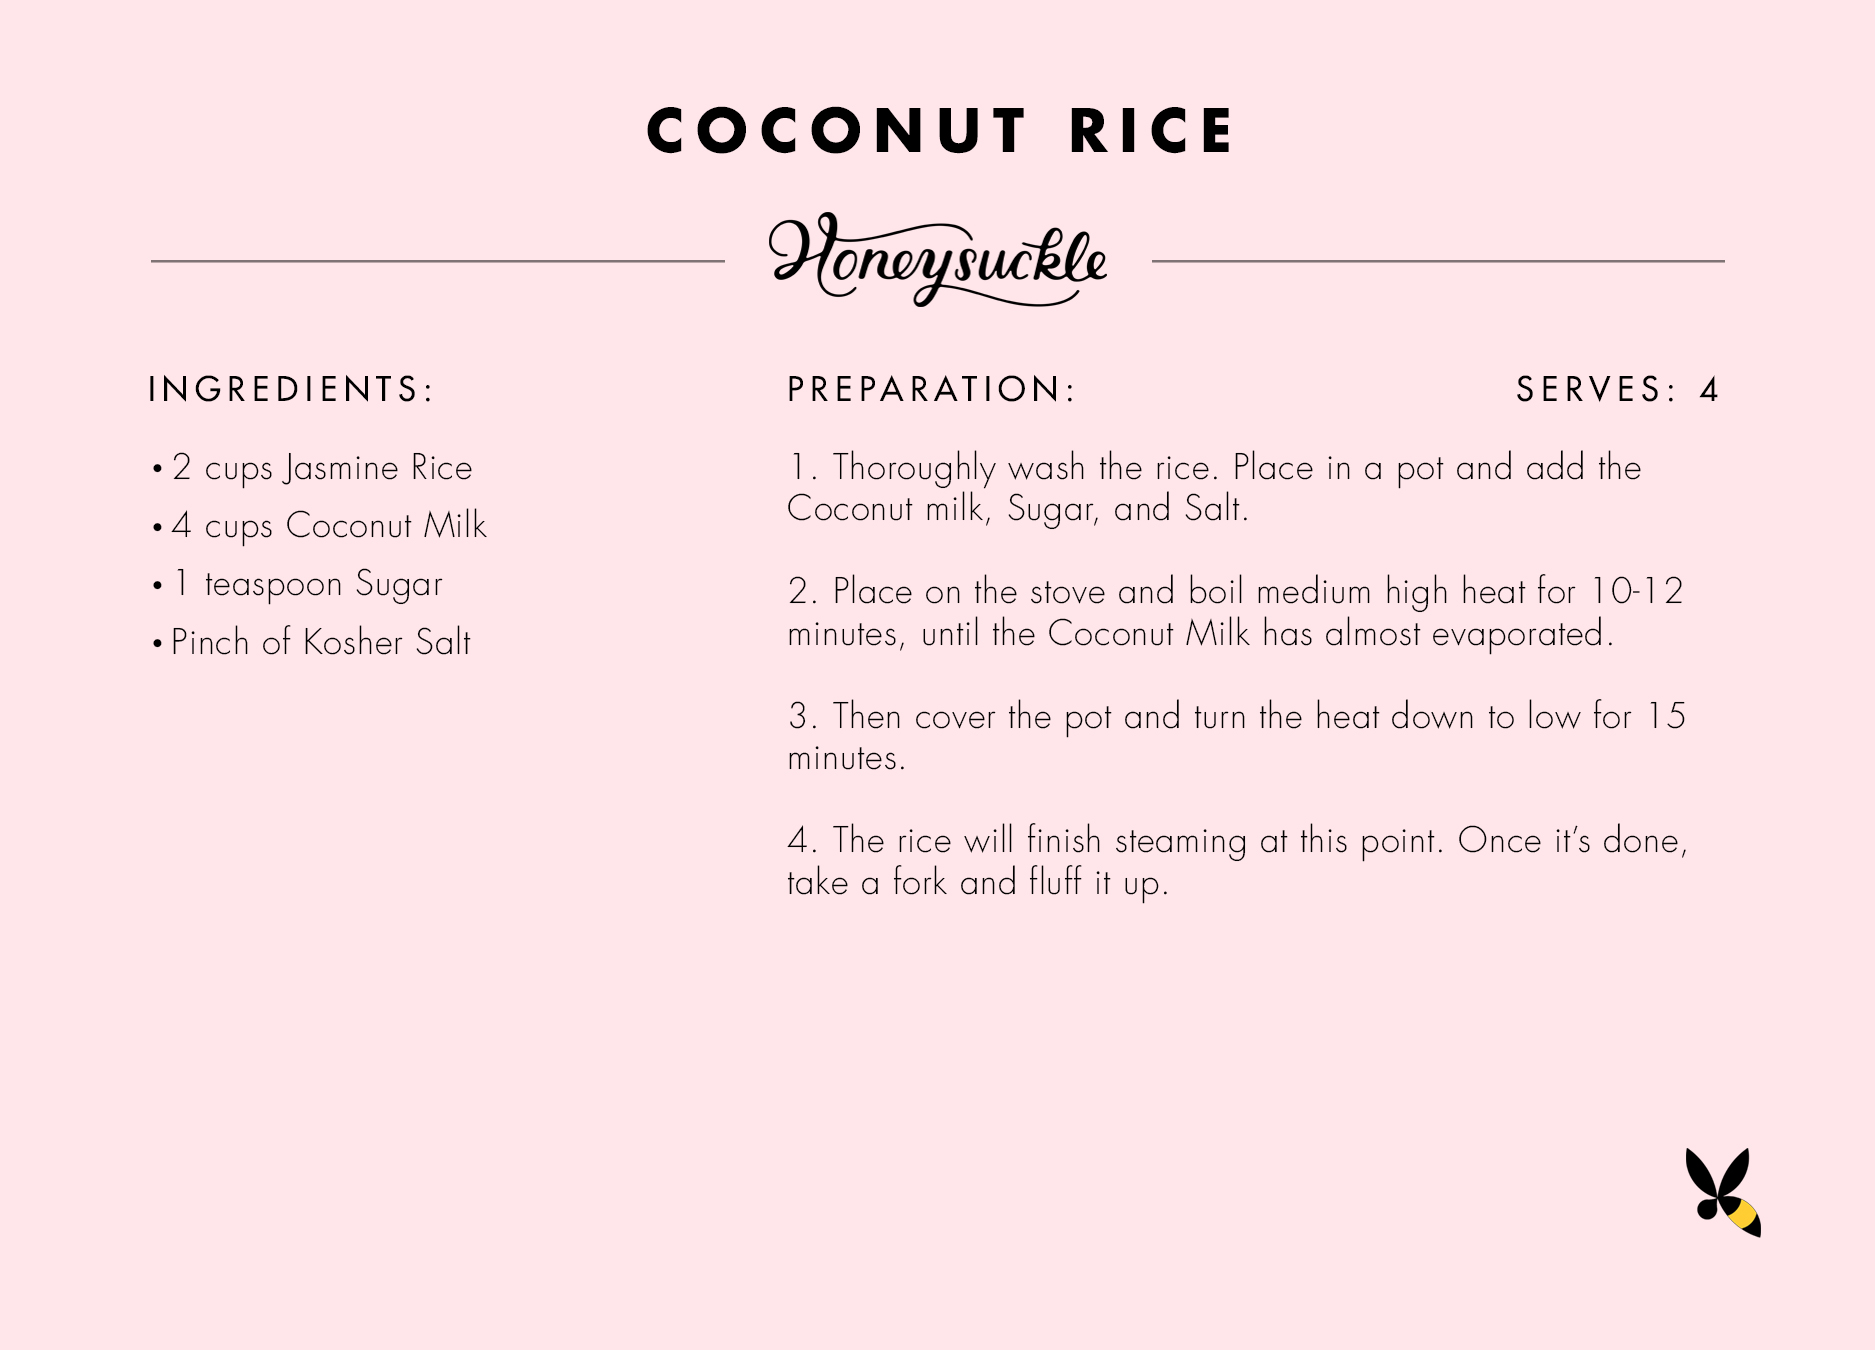 *Click this image to download a print-able recipe in a .pdf format. Or right-click this image + save link as to download